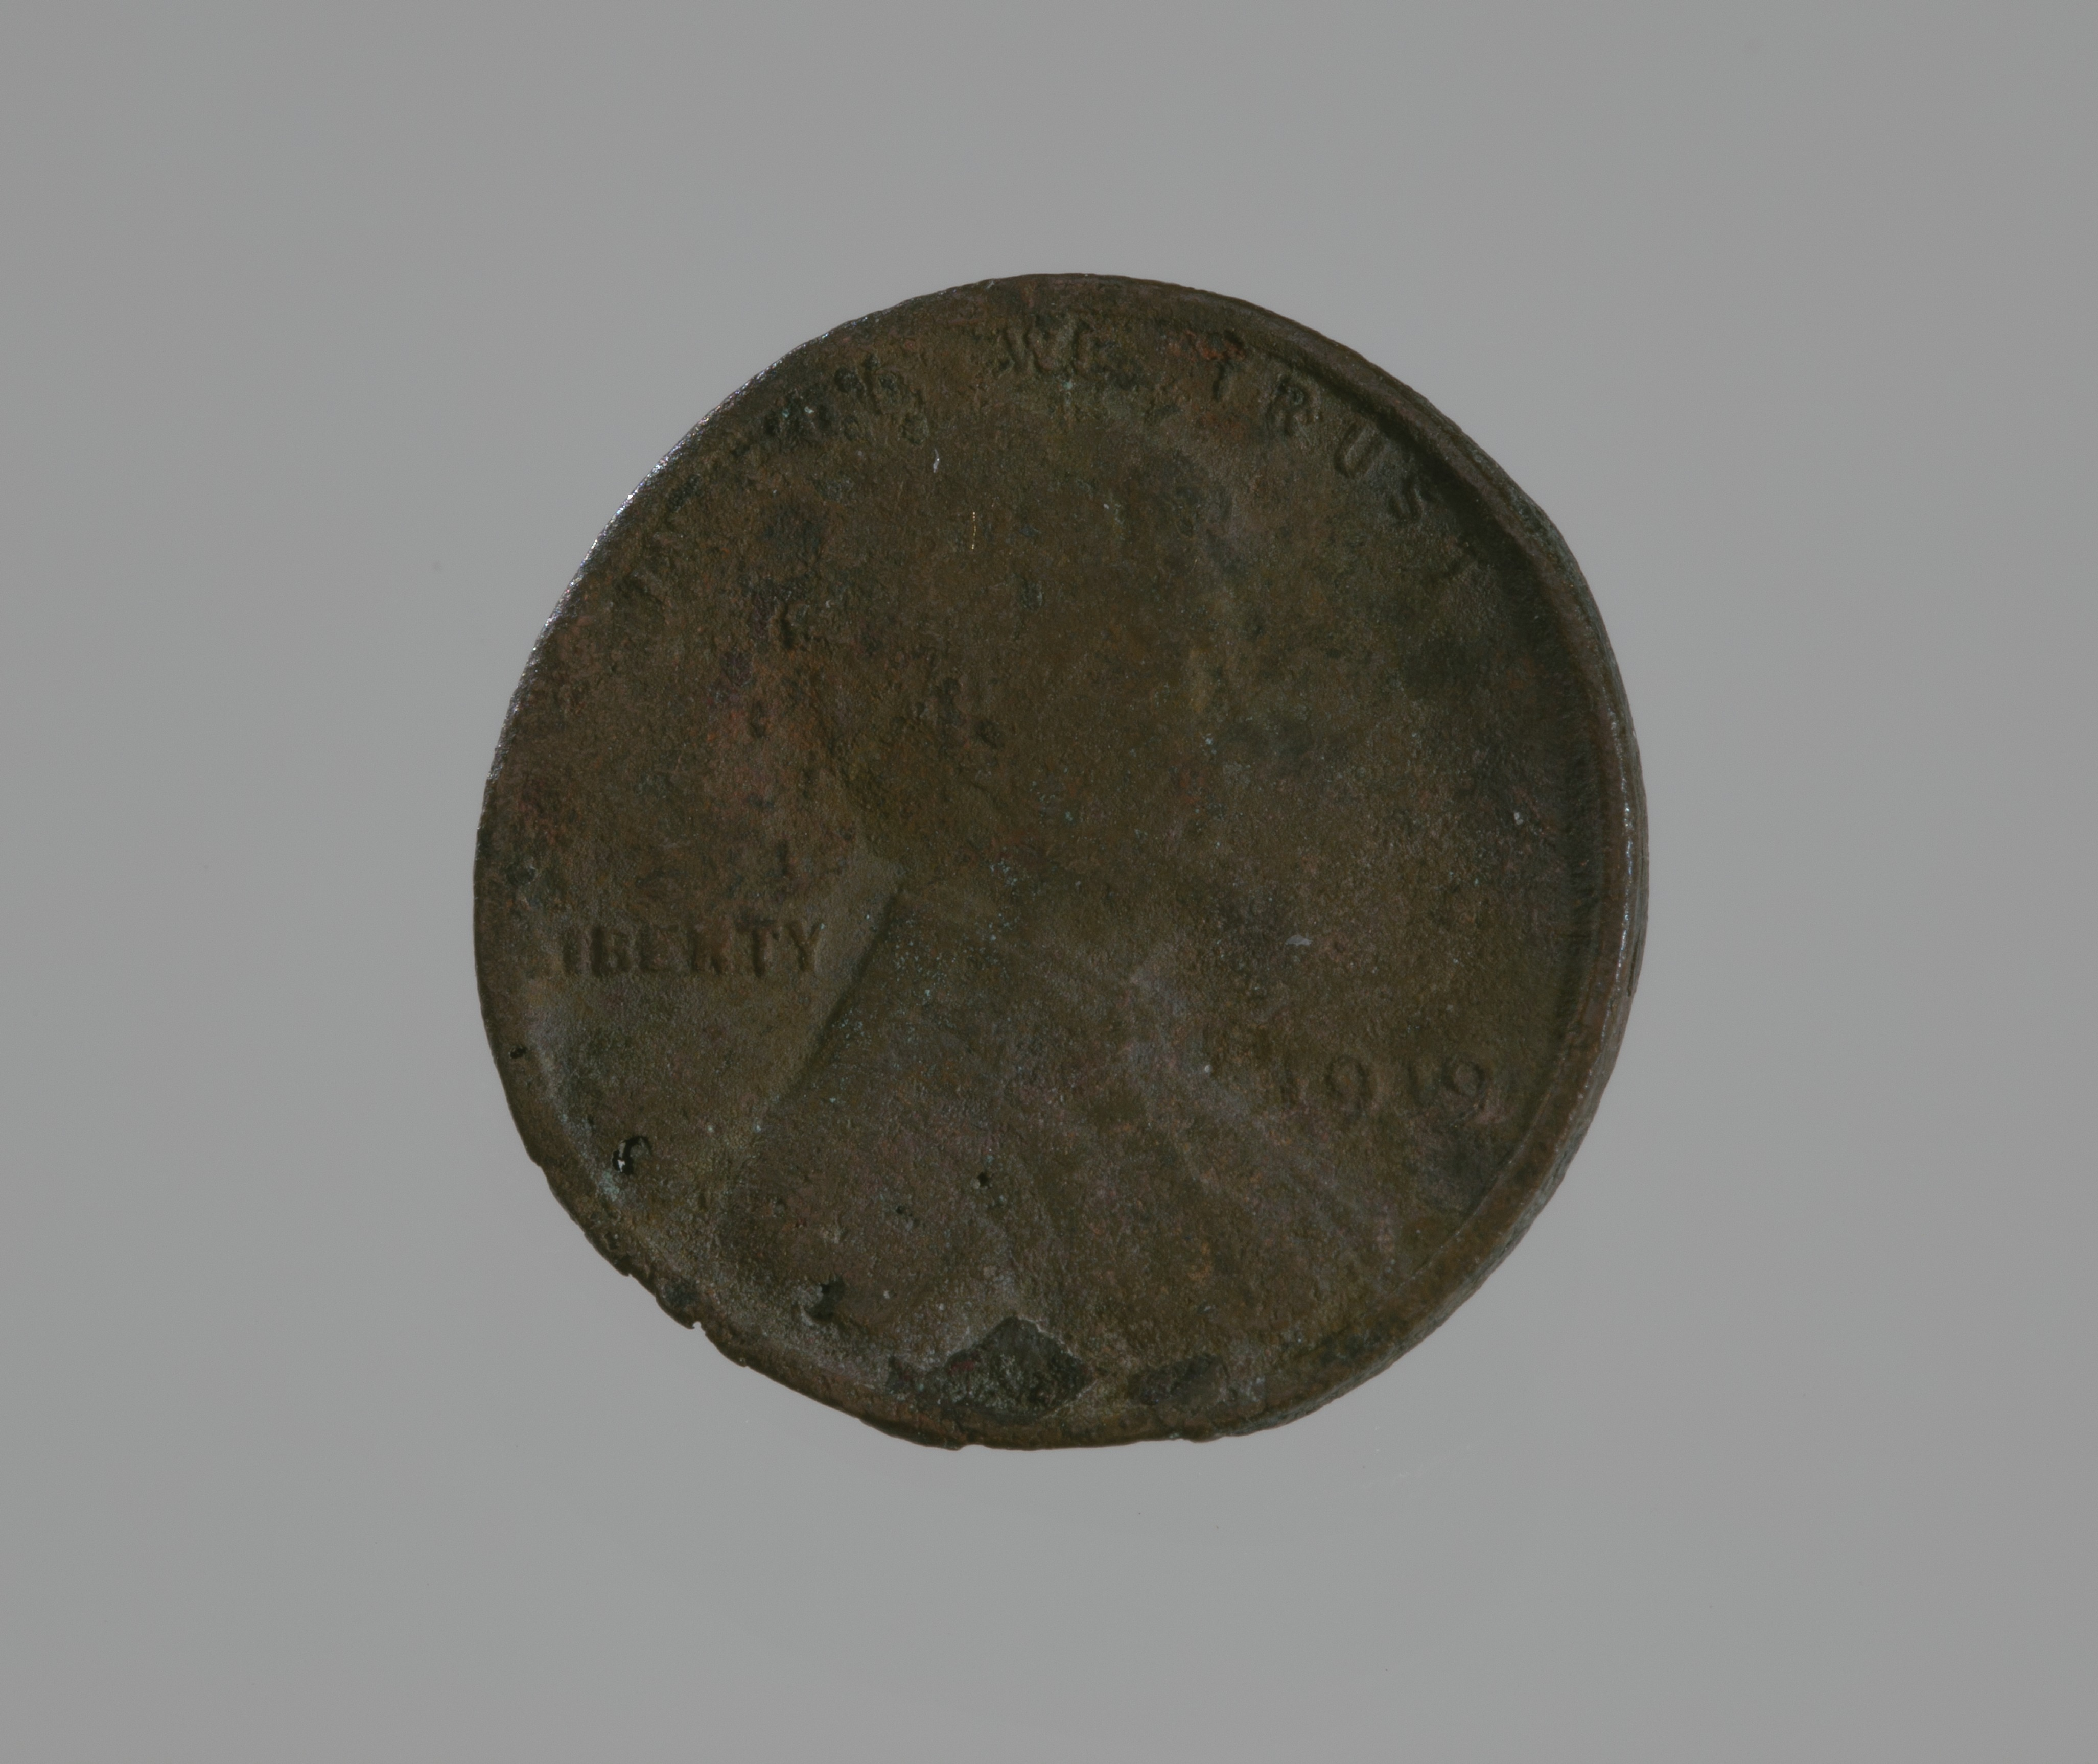 A 1919 penny. Its face is partially melted.